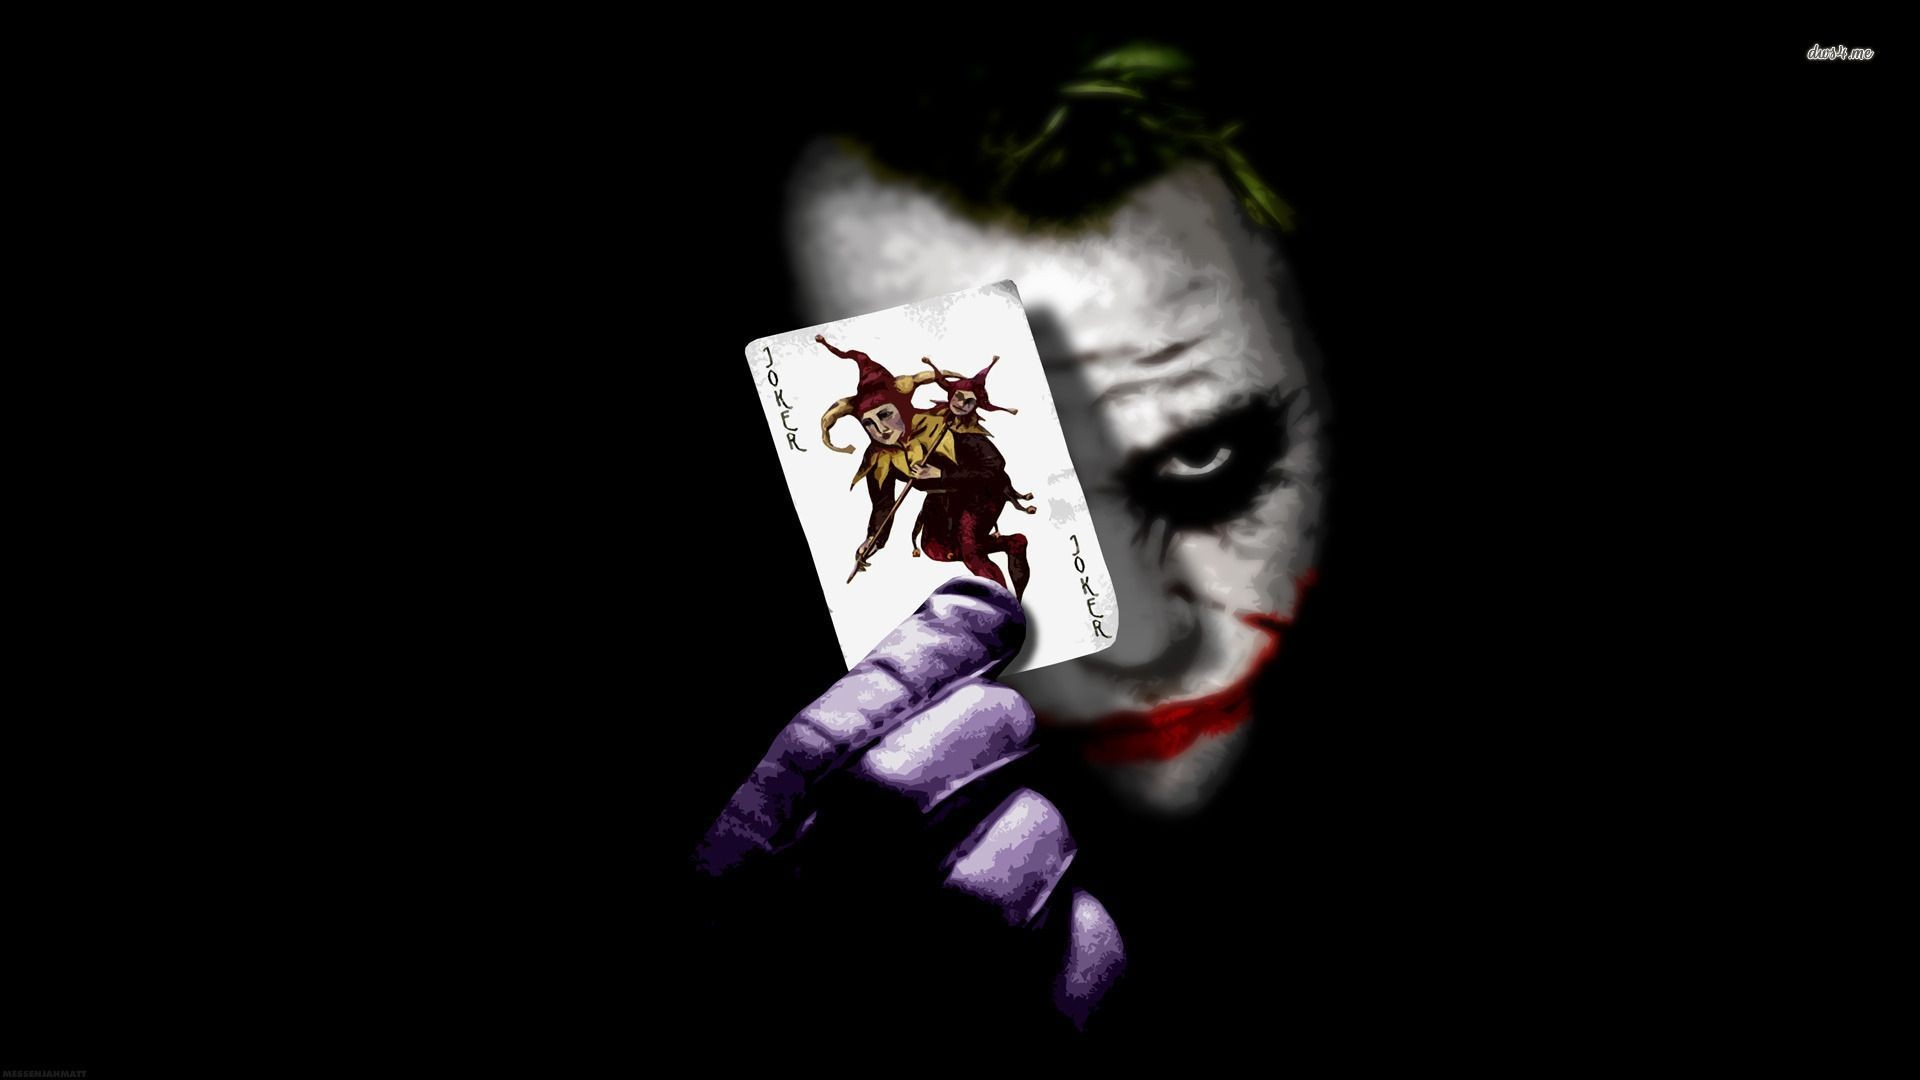 1920x1080 the joker wallpaper 1920x1080 download free